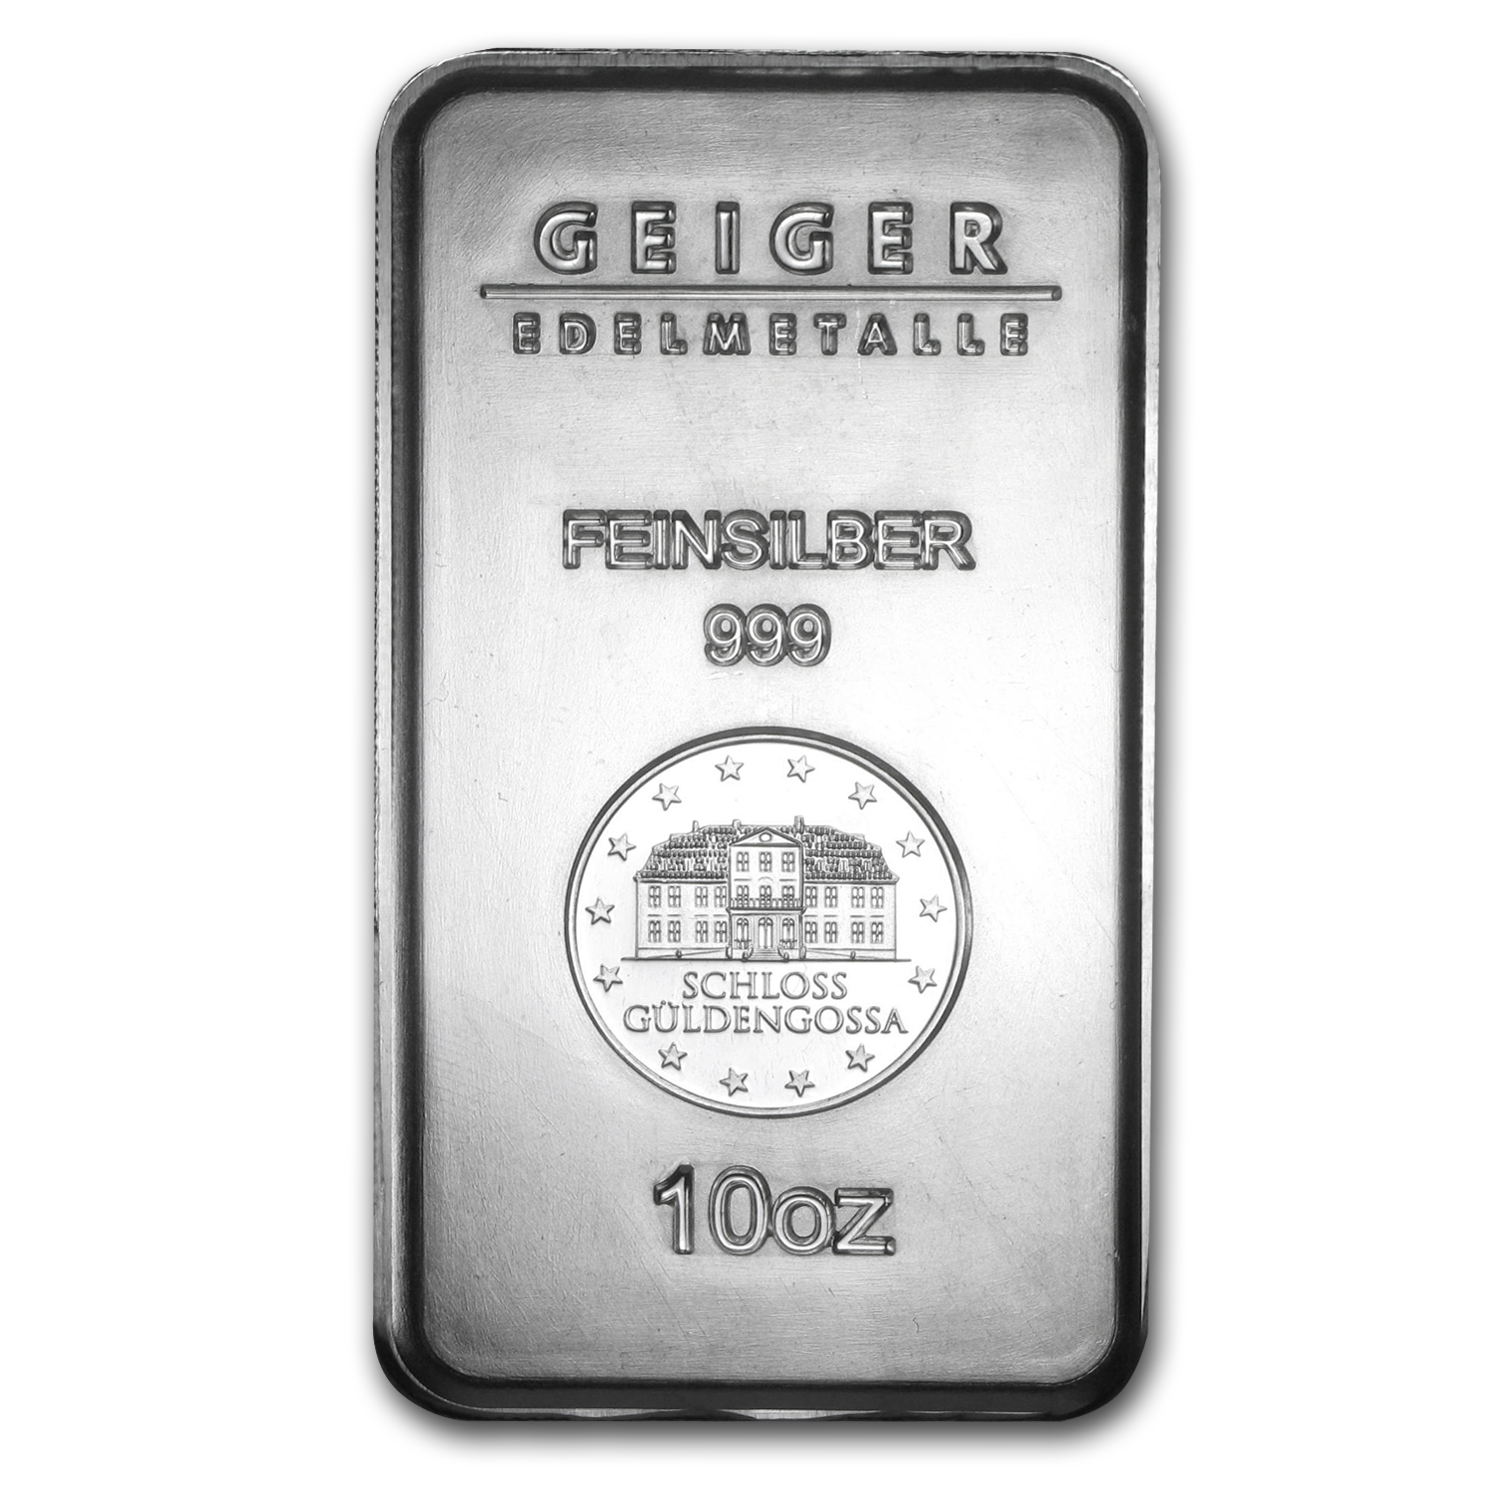 10 oz Silver Bar - Geiger (Security Line Series)